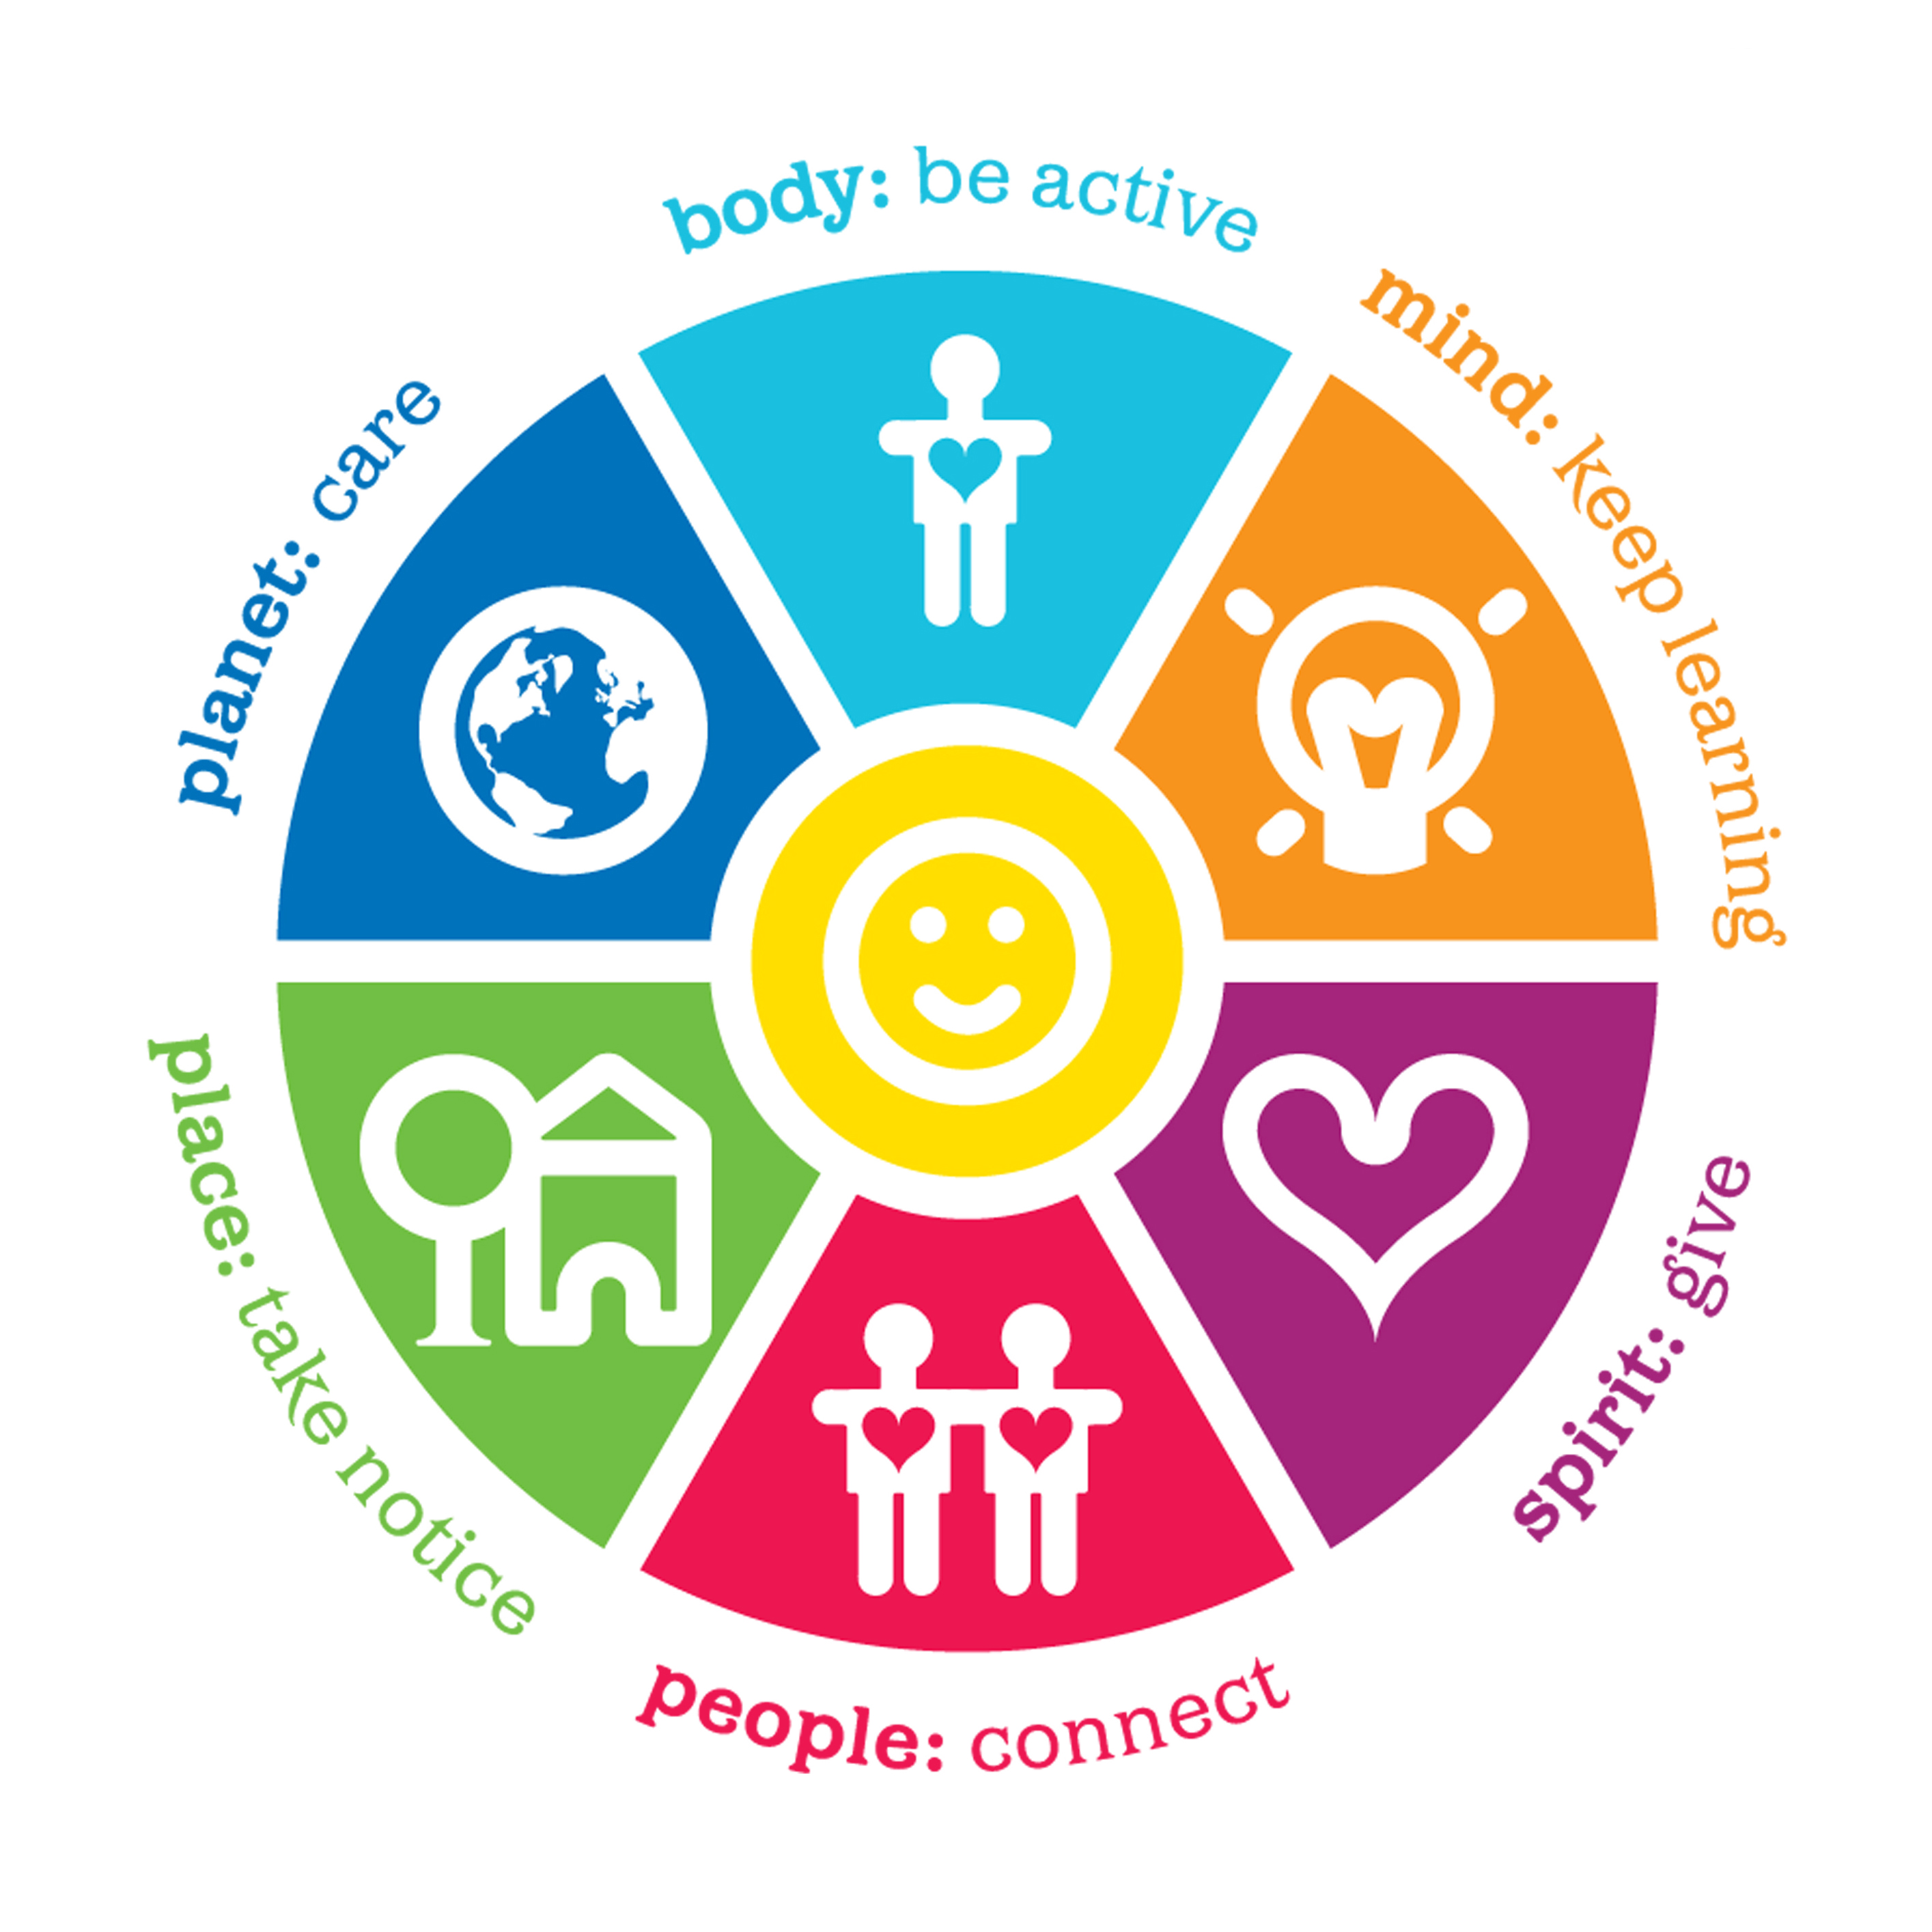 Exploring The Wheel of Wellbeing